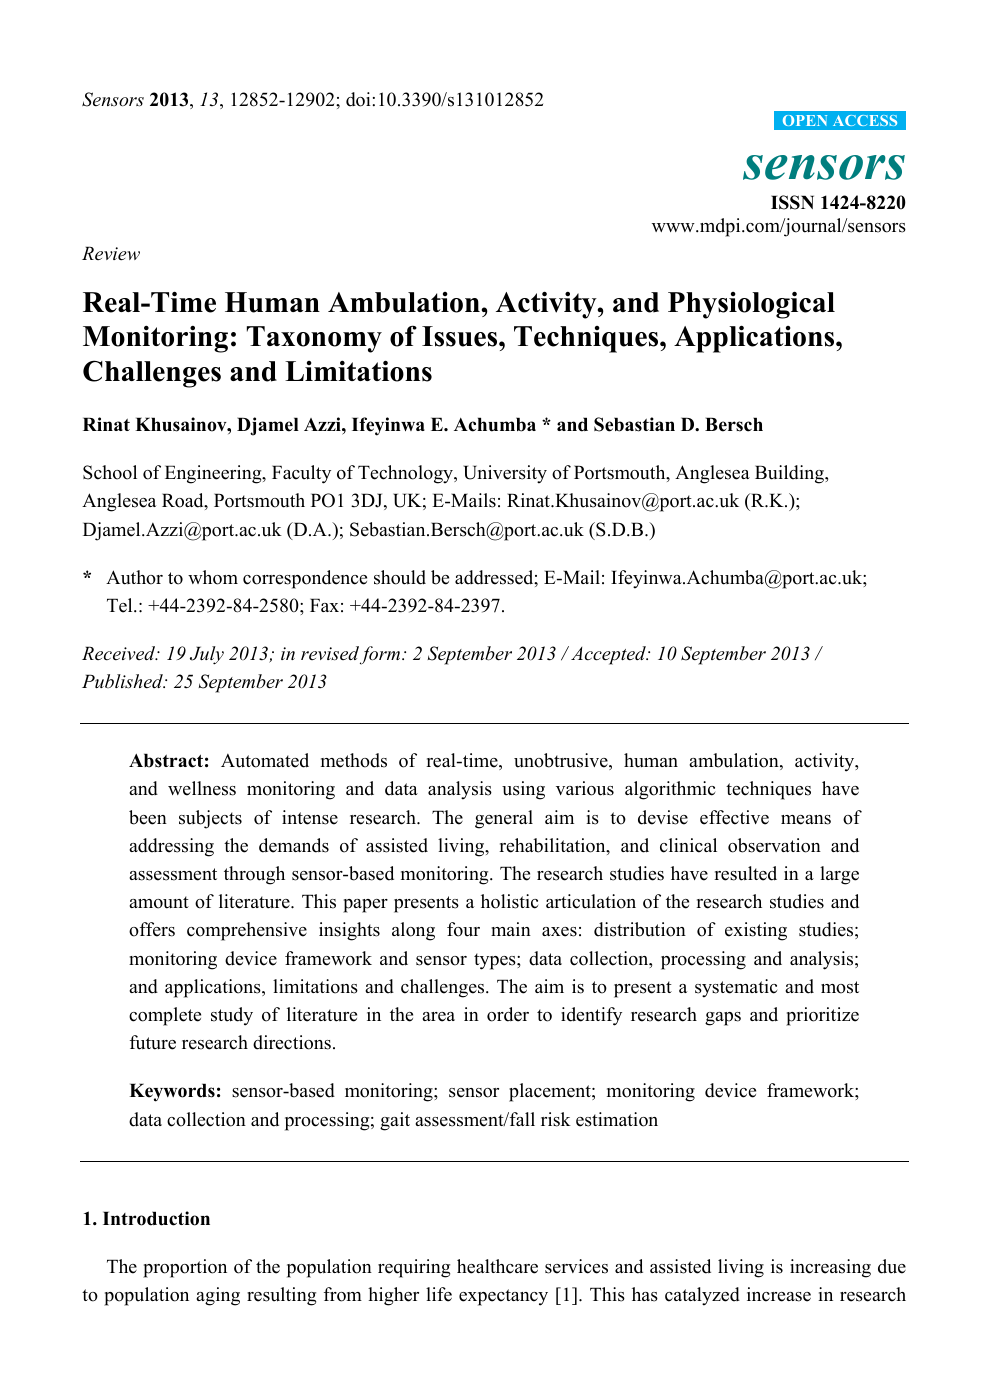 Real-Time Human Ambulation, Activity, and Physiological